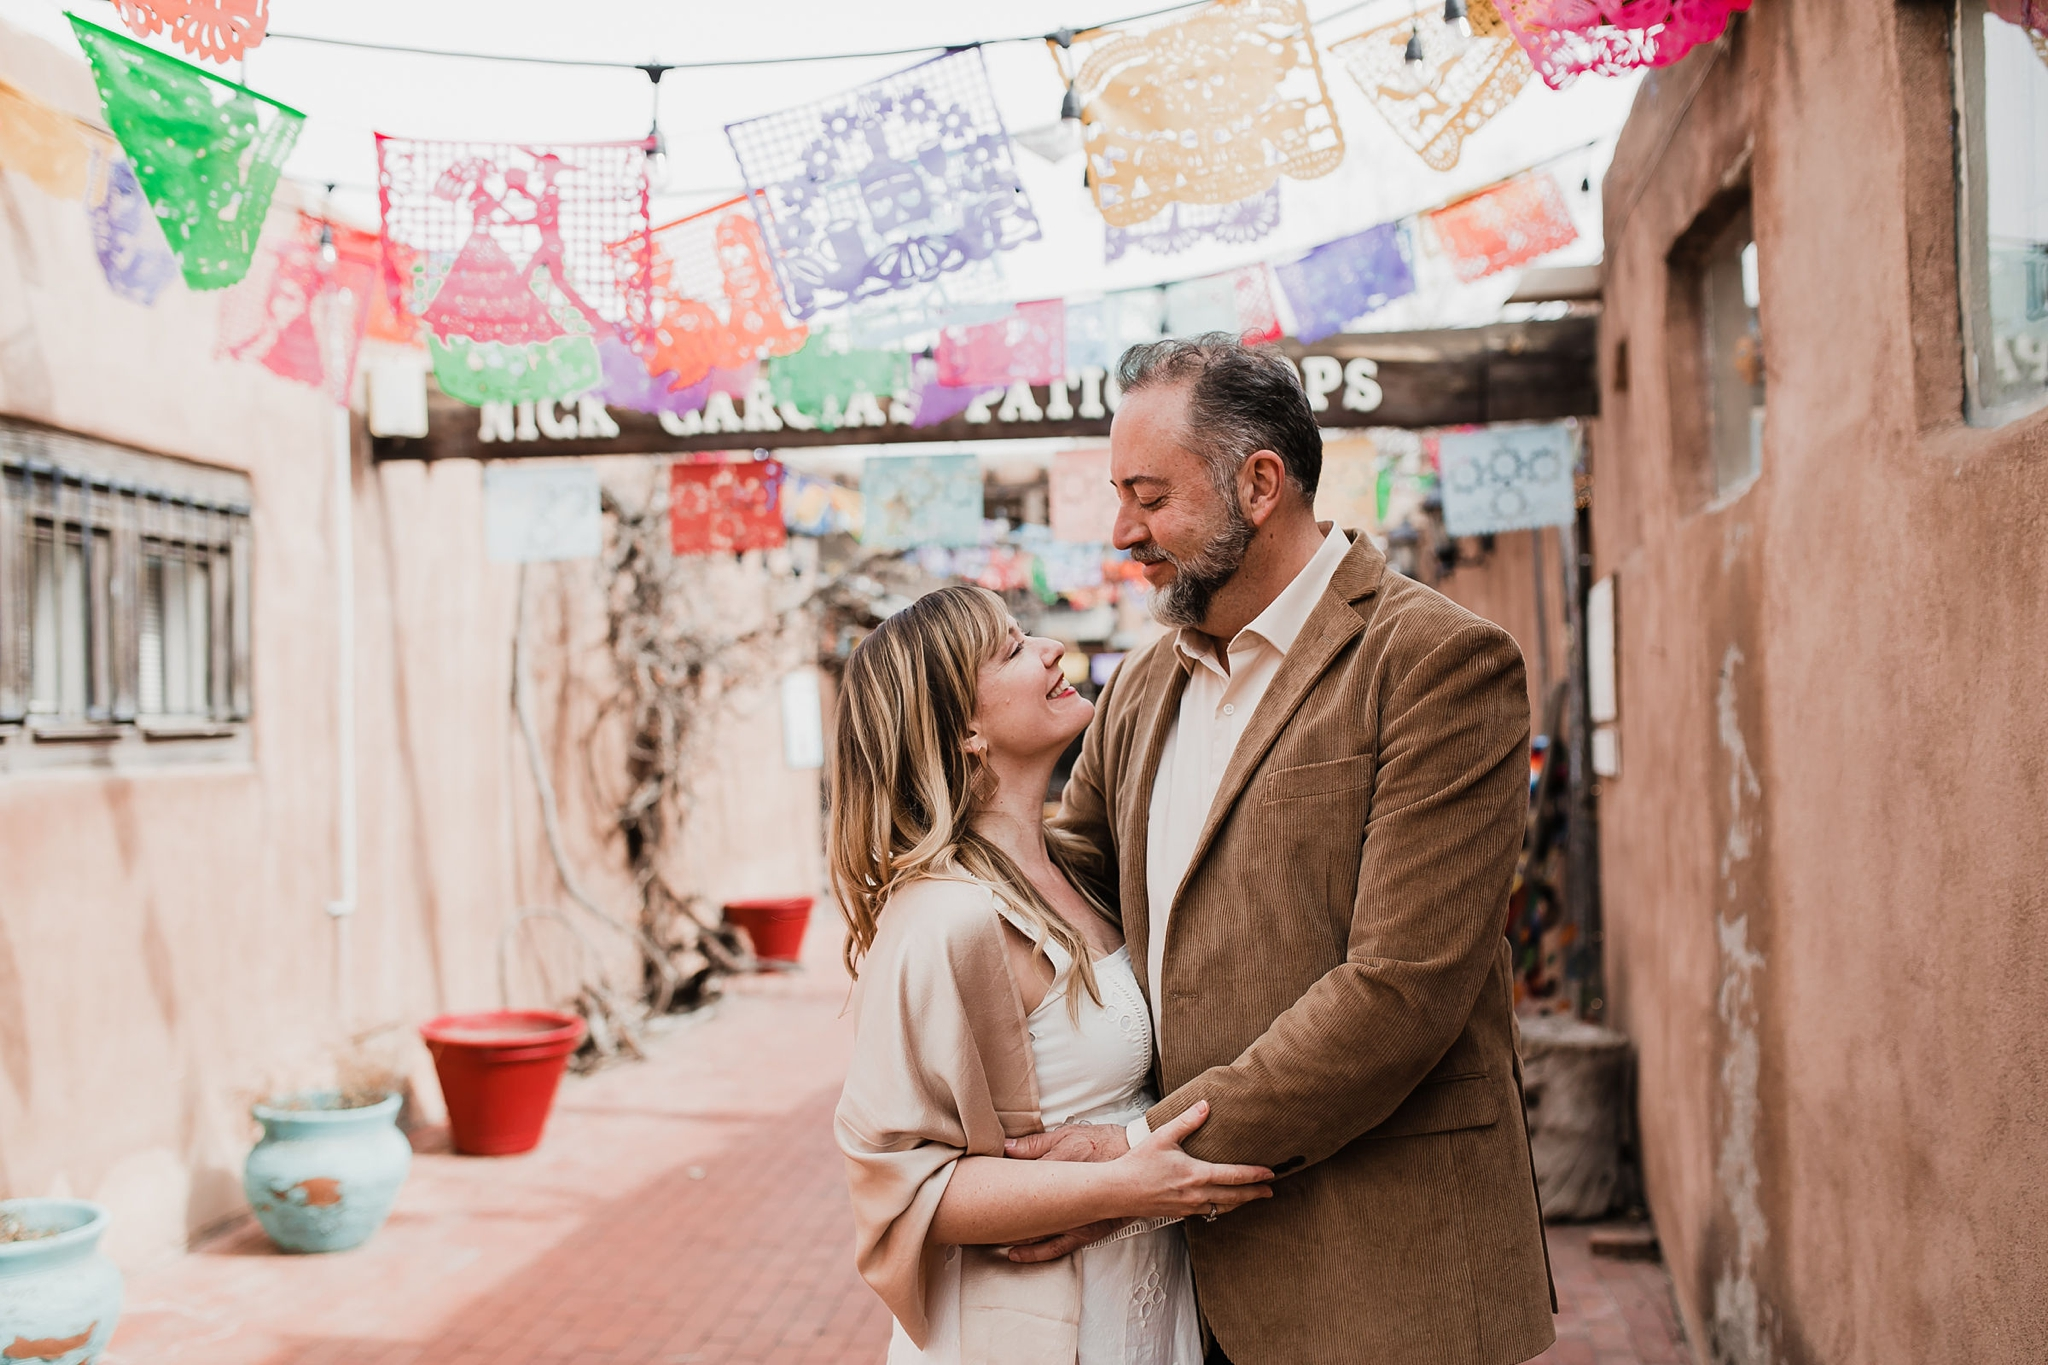 Alicia+lucia+photography+-+albuquerque+wedding+photographer+-+santa+fe+wedding+photography+-+new+mexico+wedding+photographer+-+new+mexico+wedding+-+new+mexico+engagement+-+albuquerque+engagement+-+old+town+engagement_0024.jpg